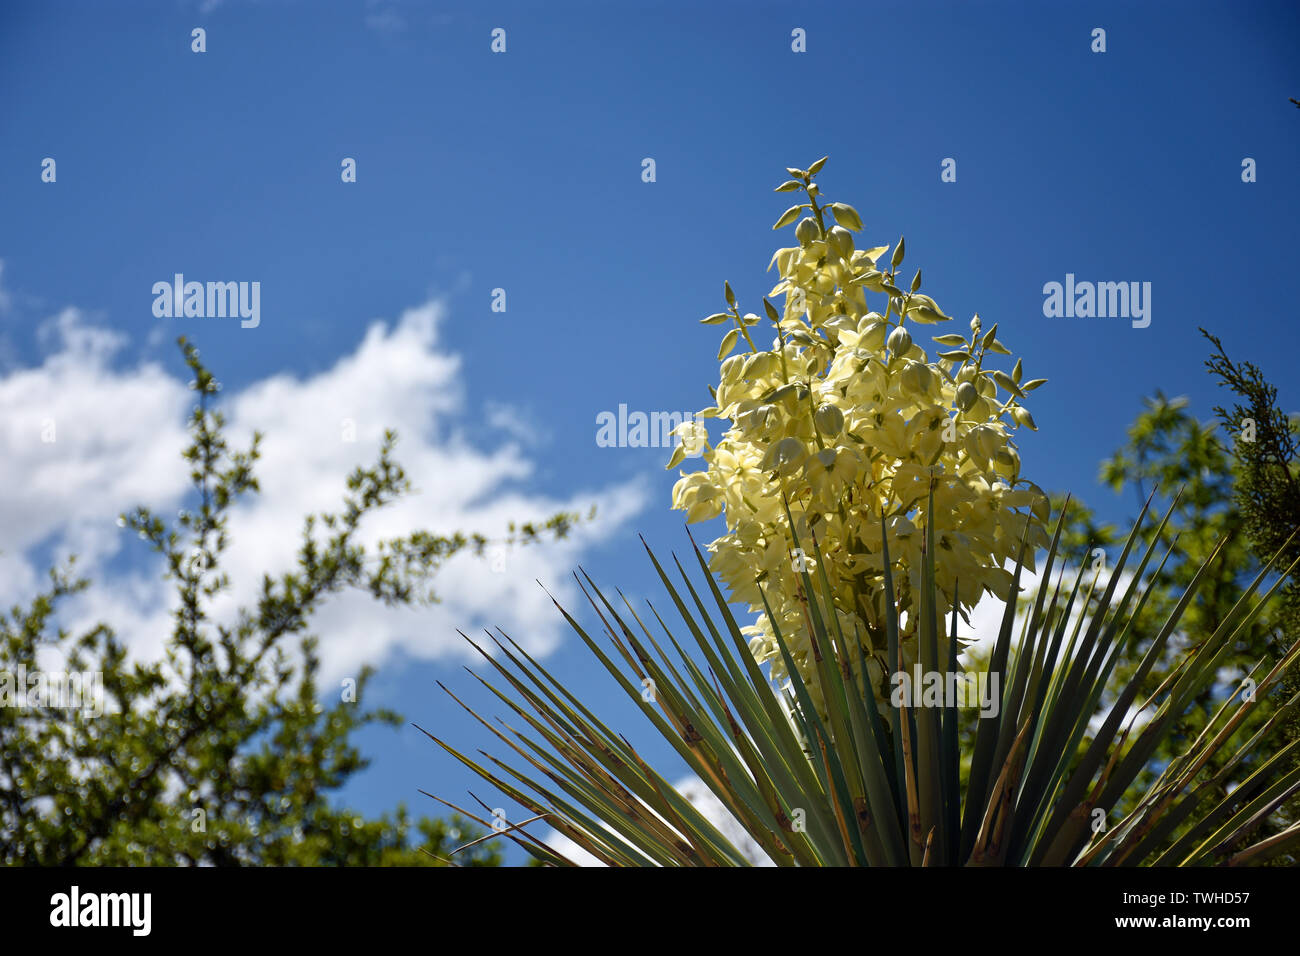 Desert Yucca in the Sky - Stock Image